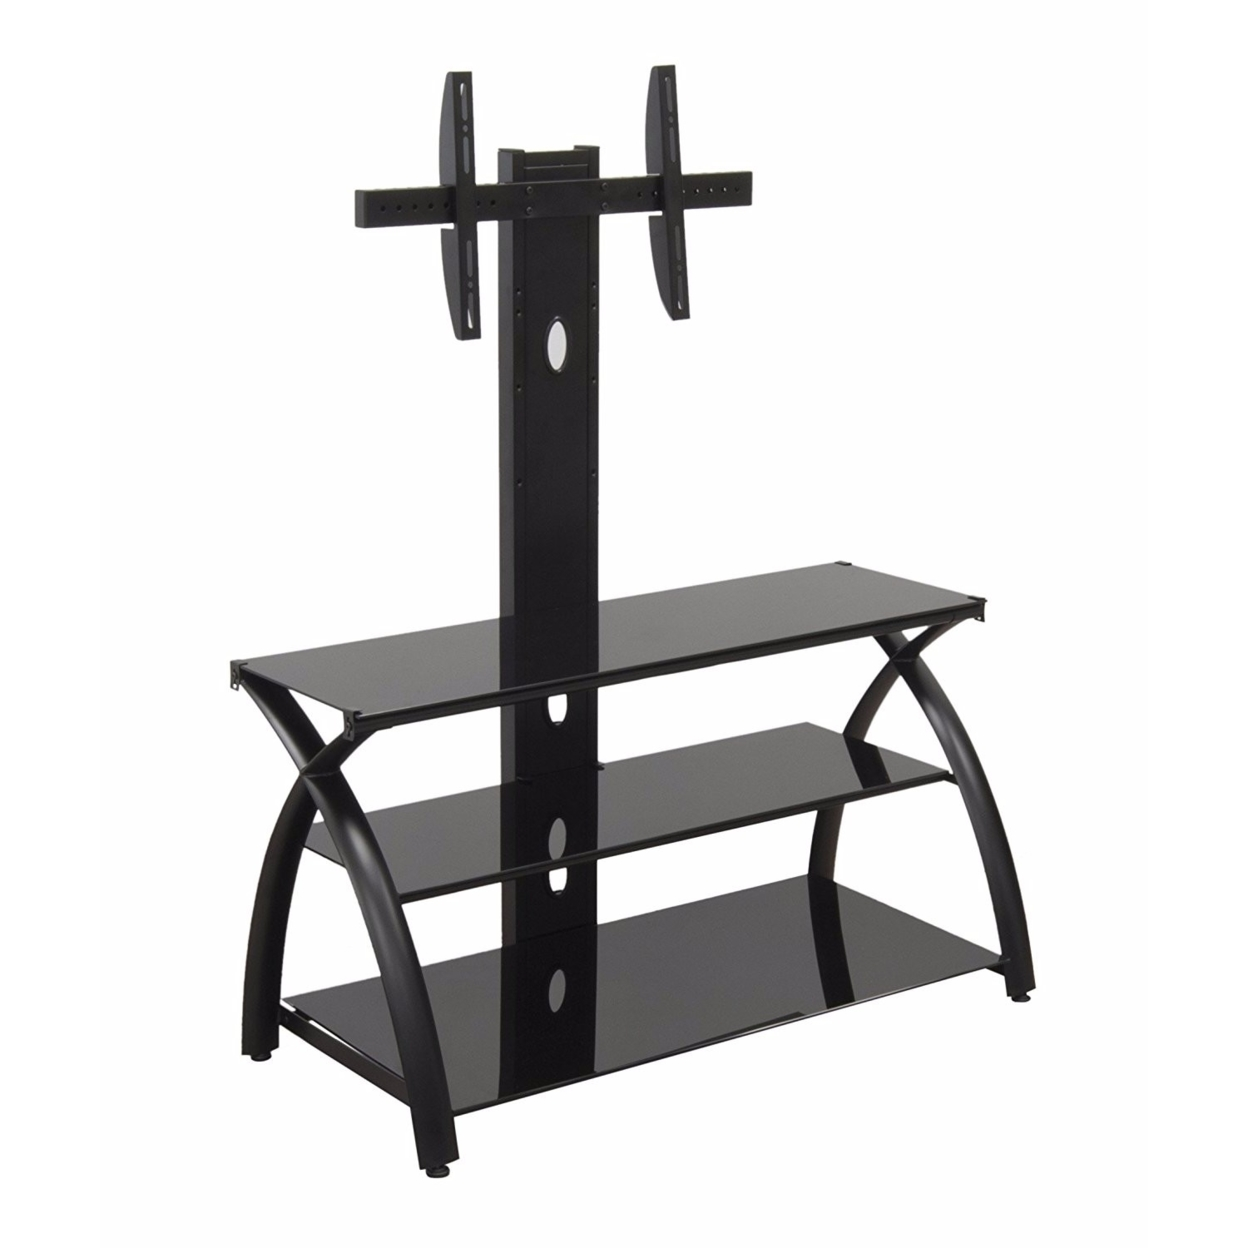 Offex Home Office Futura TV Stand with Tower Glass - Black/Black offex home office plinth ottoman latte